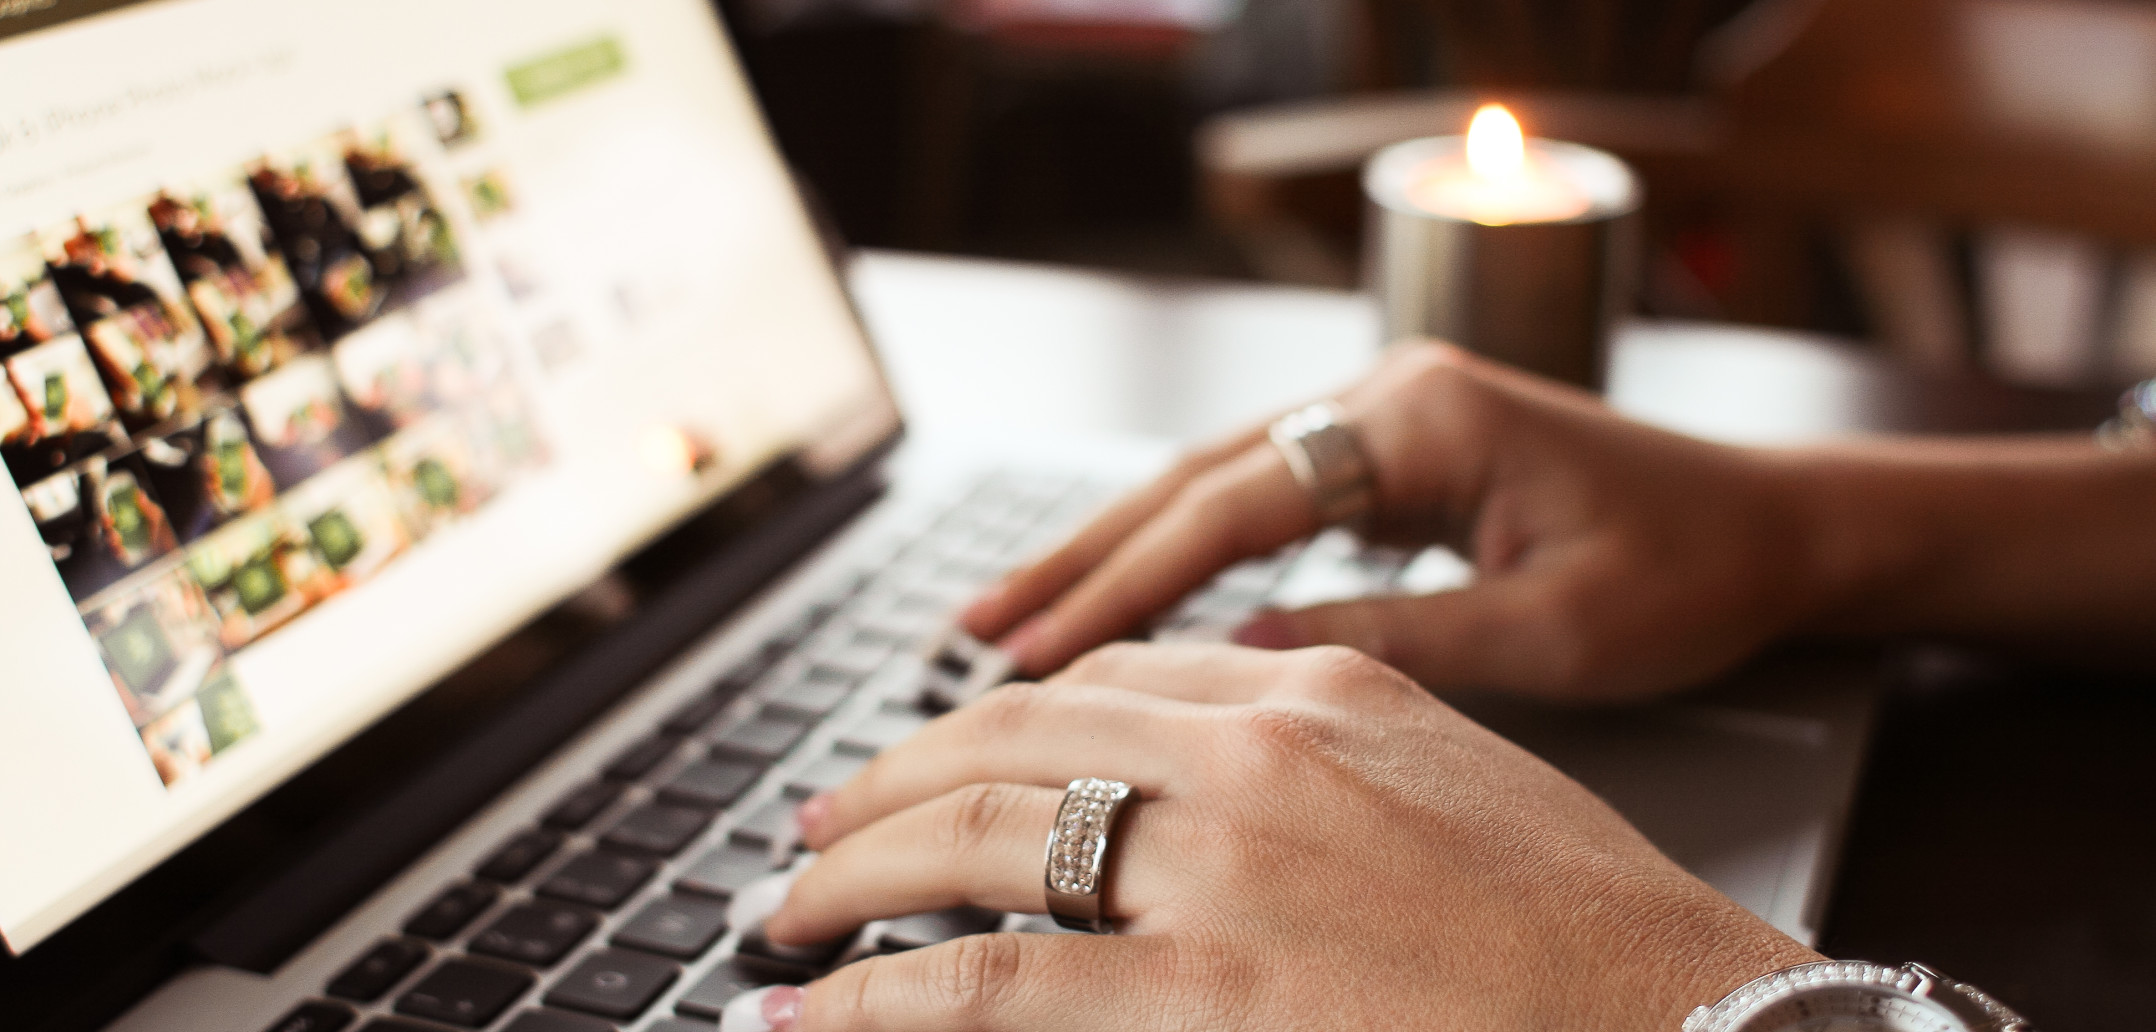 web surfing essay Looking for a scholarship that doesn't require an essay well, look no further than scholarshippointscom for your chance to win a $1,000 scholarship.